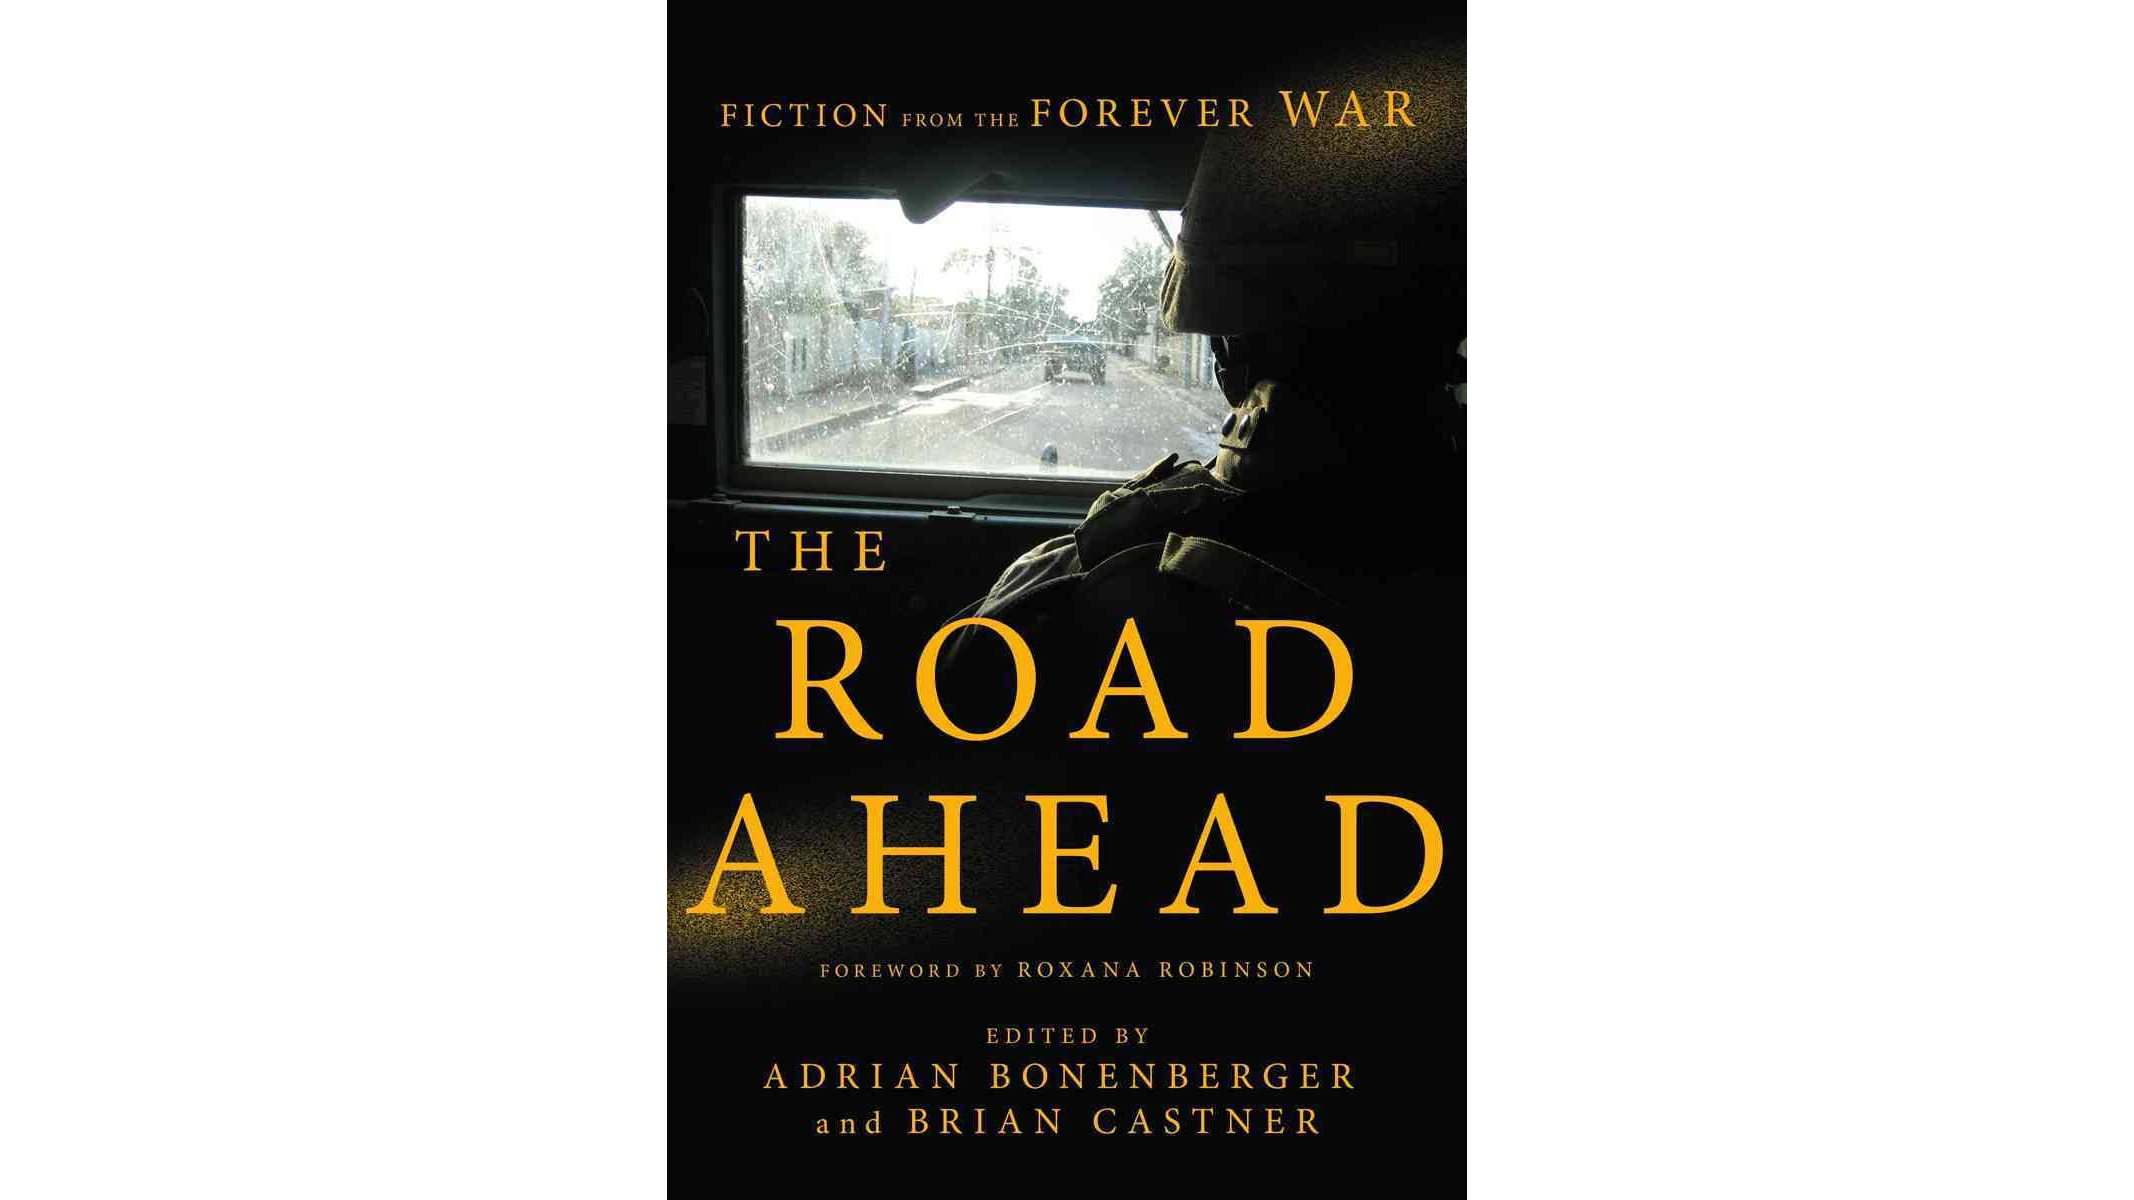 Spring 2017 book review -- Fiction from the Forever War